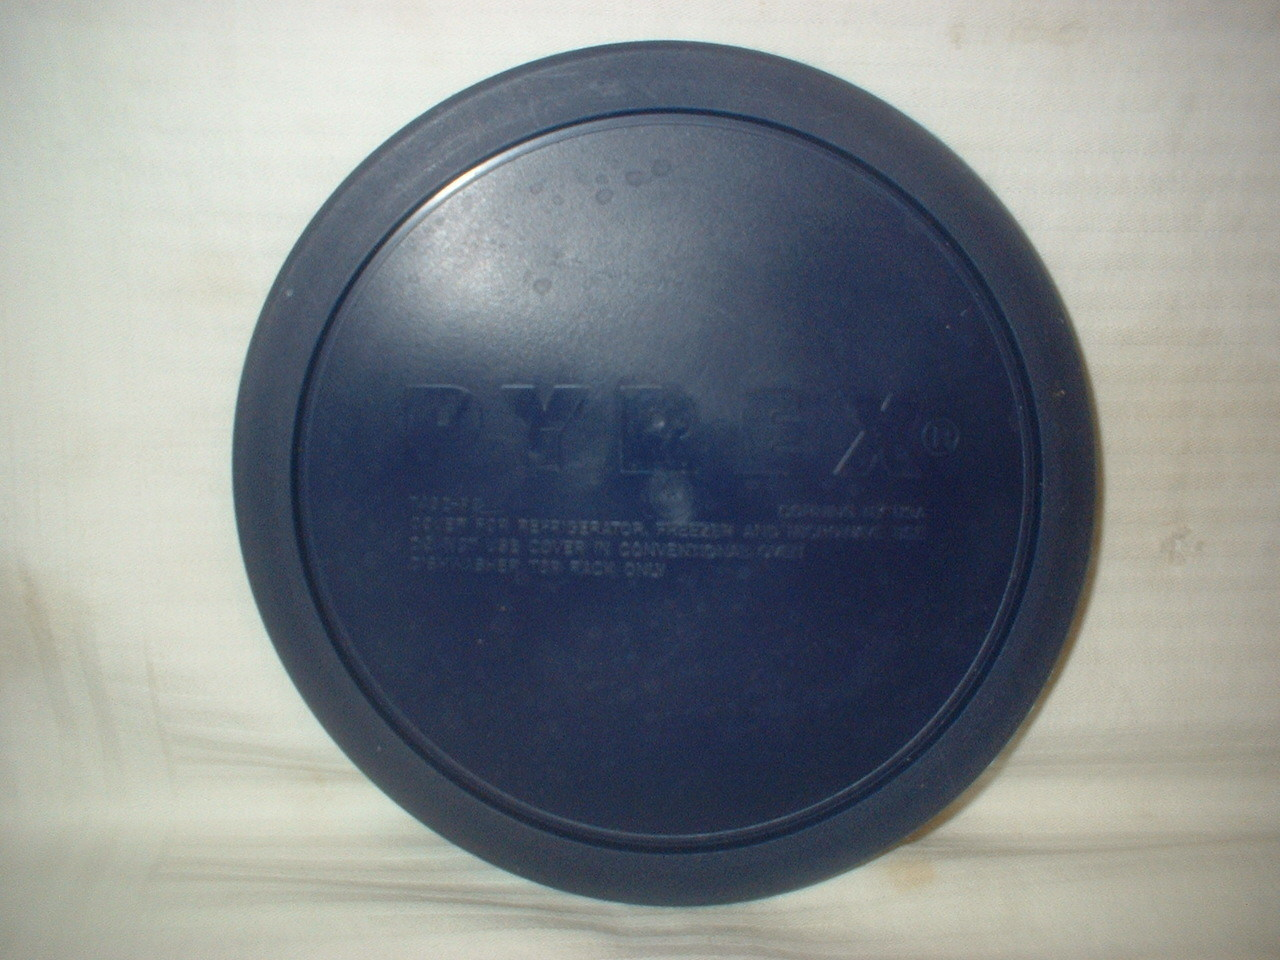 "PYREX Plastic Lid Round 7402 PC 7"" Replacement Lid Parts Fits 1.5 L Mixing Bowls"